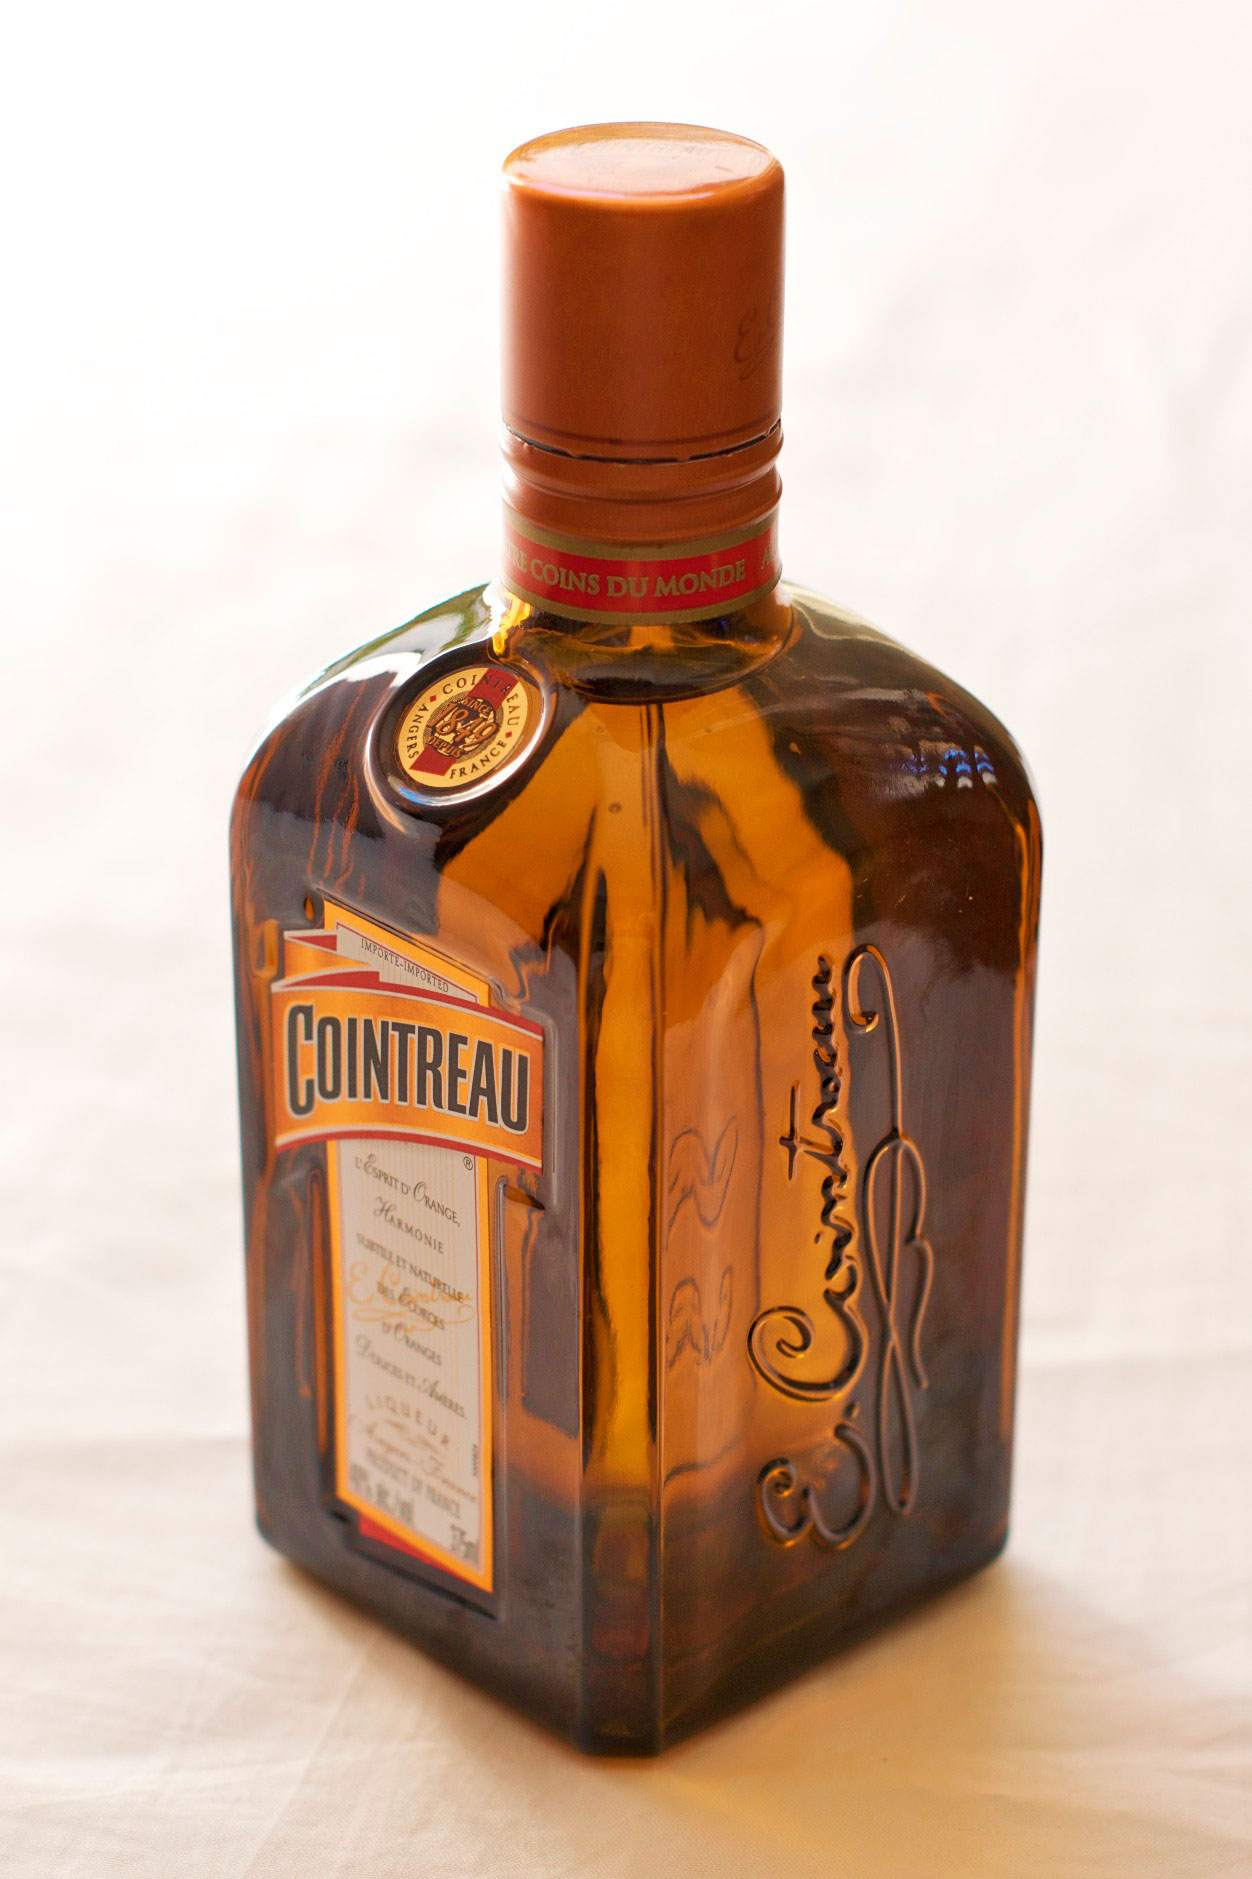 Liqueur_Cointreau_-Imported-_-_45_degrees_c_Ikokujin-at-Wikimedia-Commons.jpg